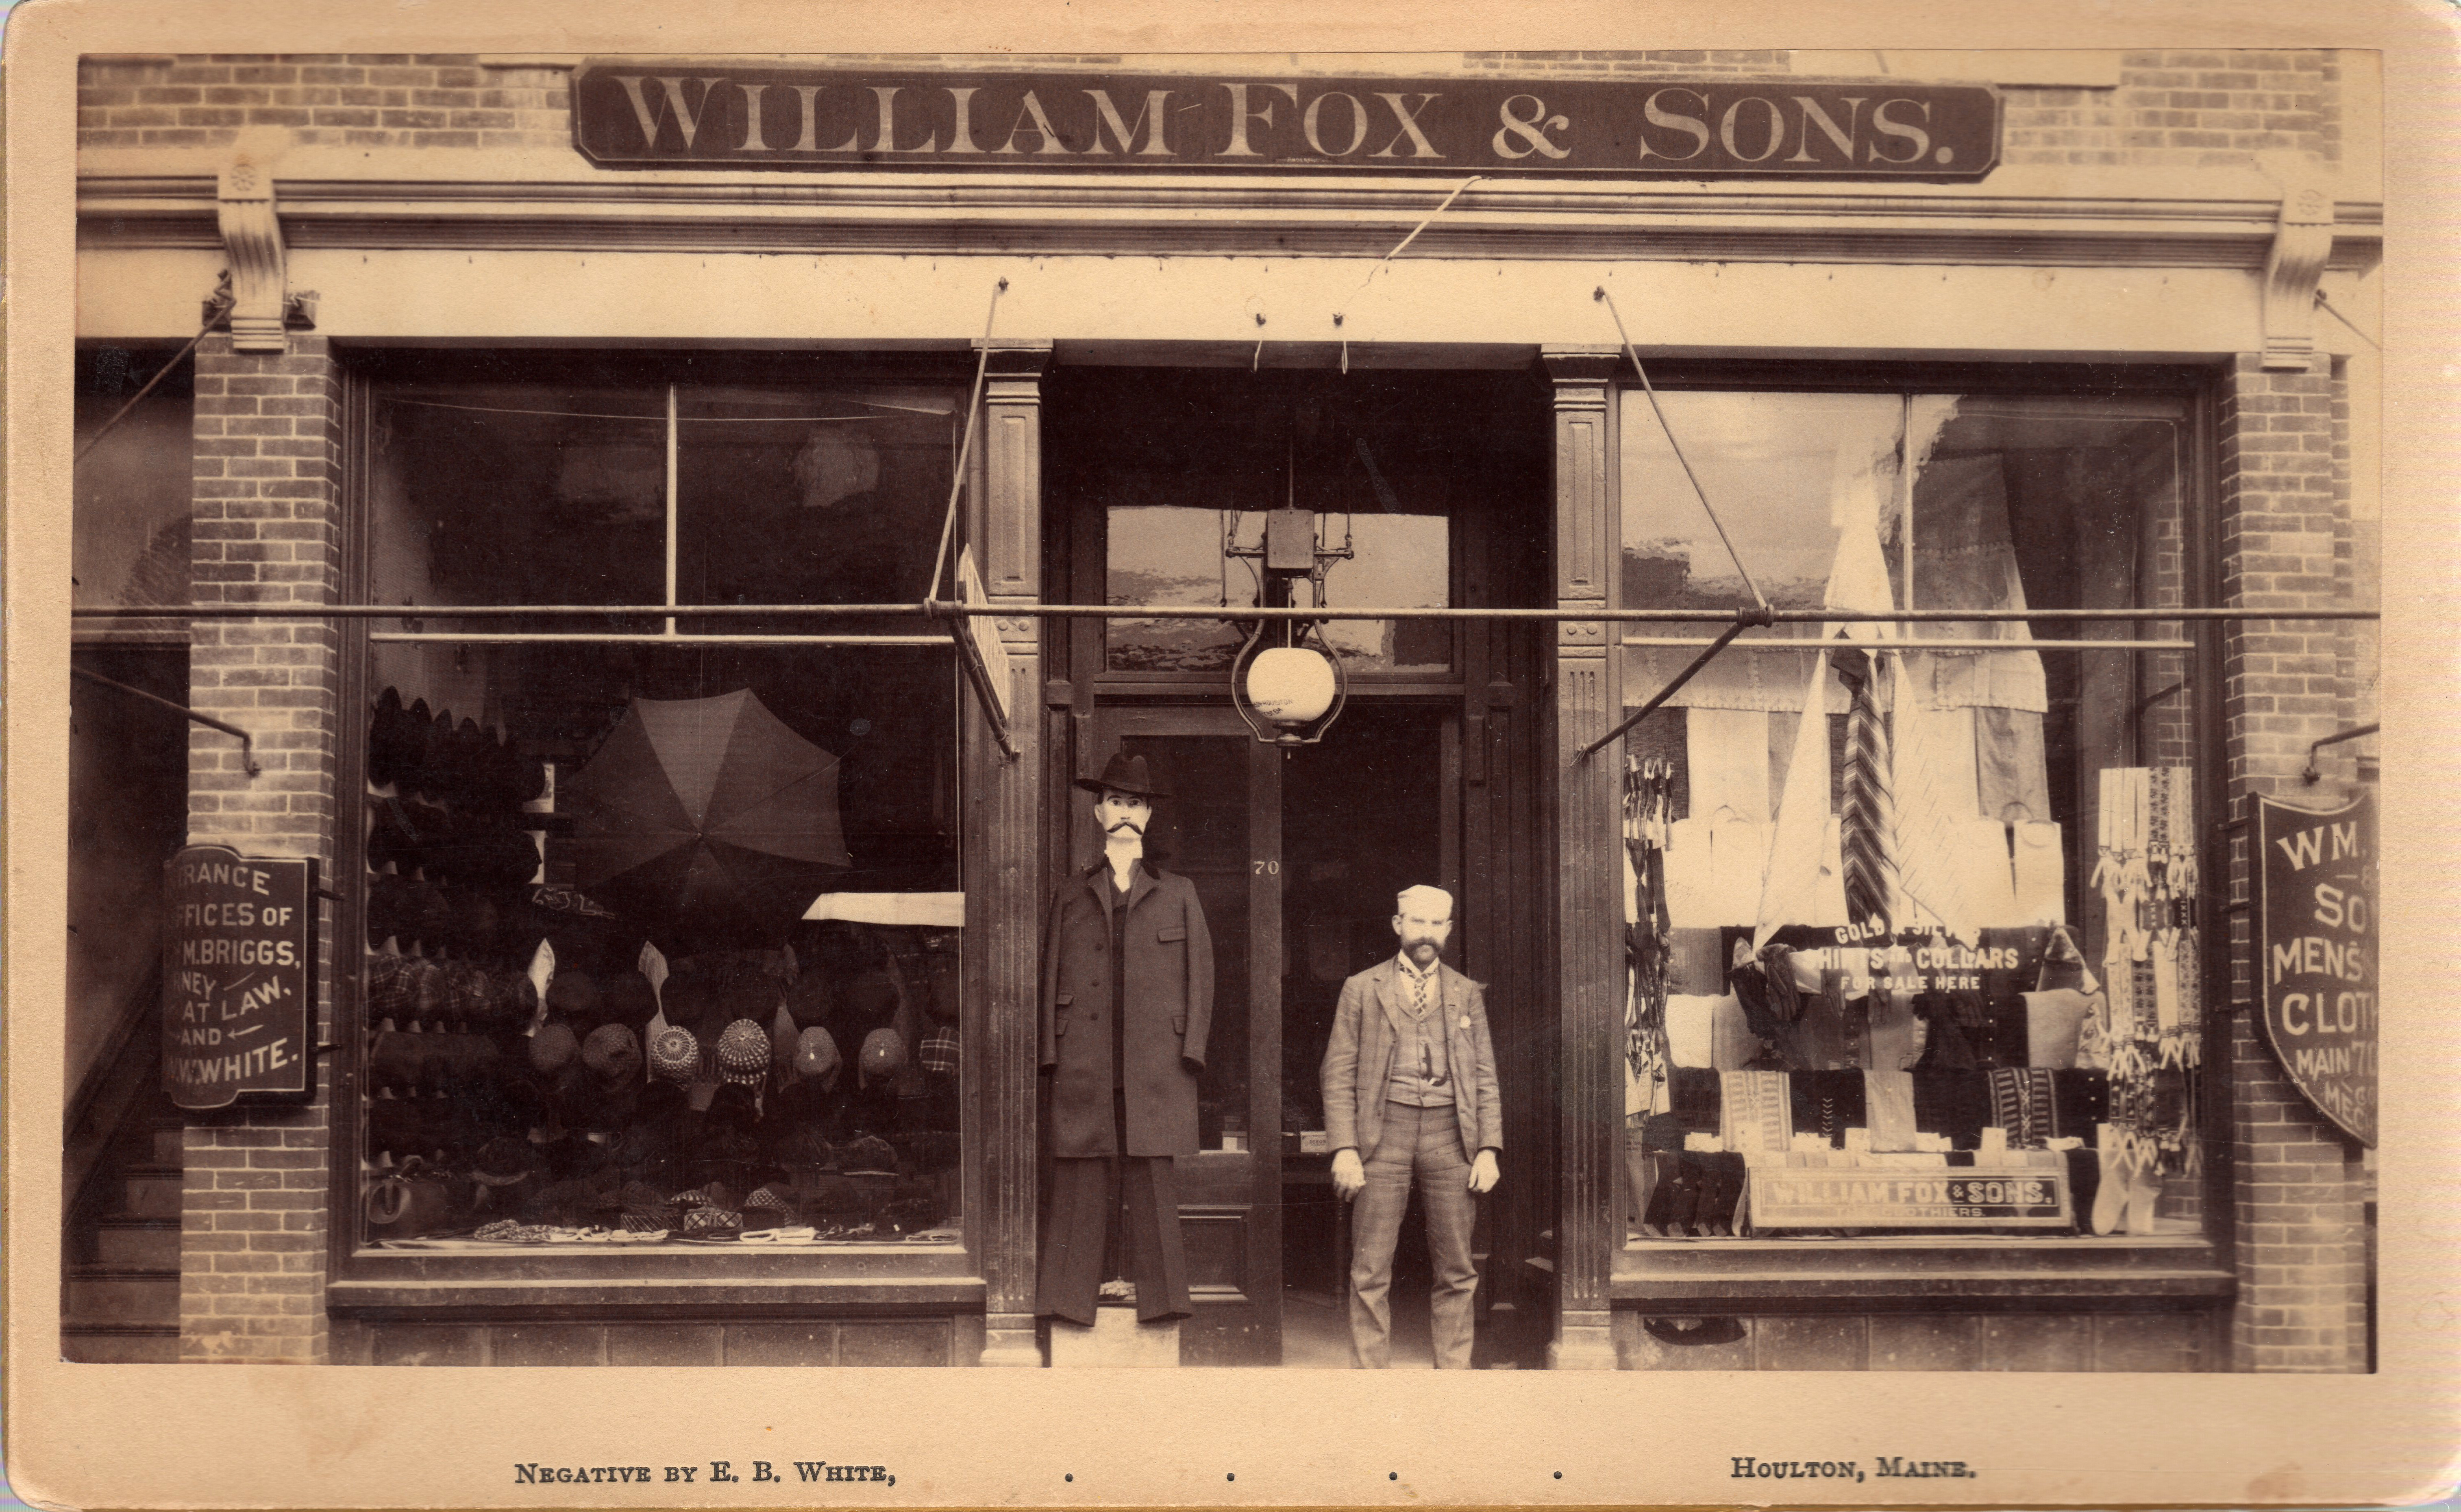 Fox and Son's Houlton